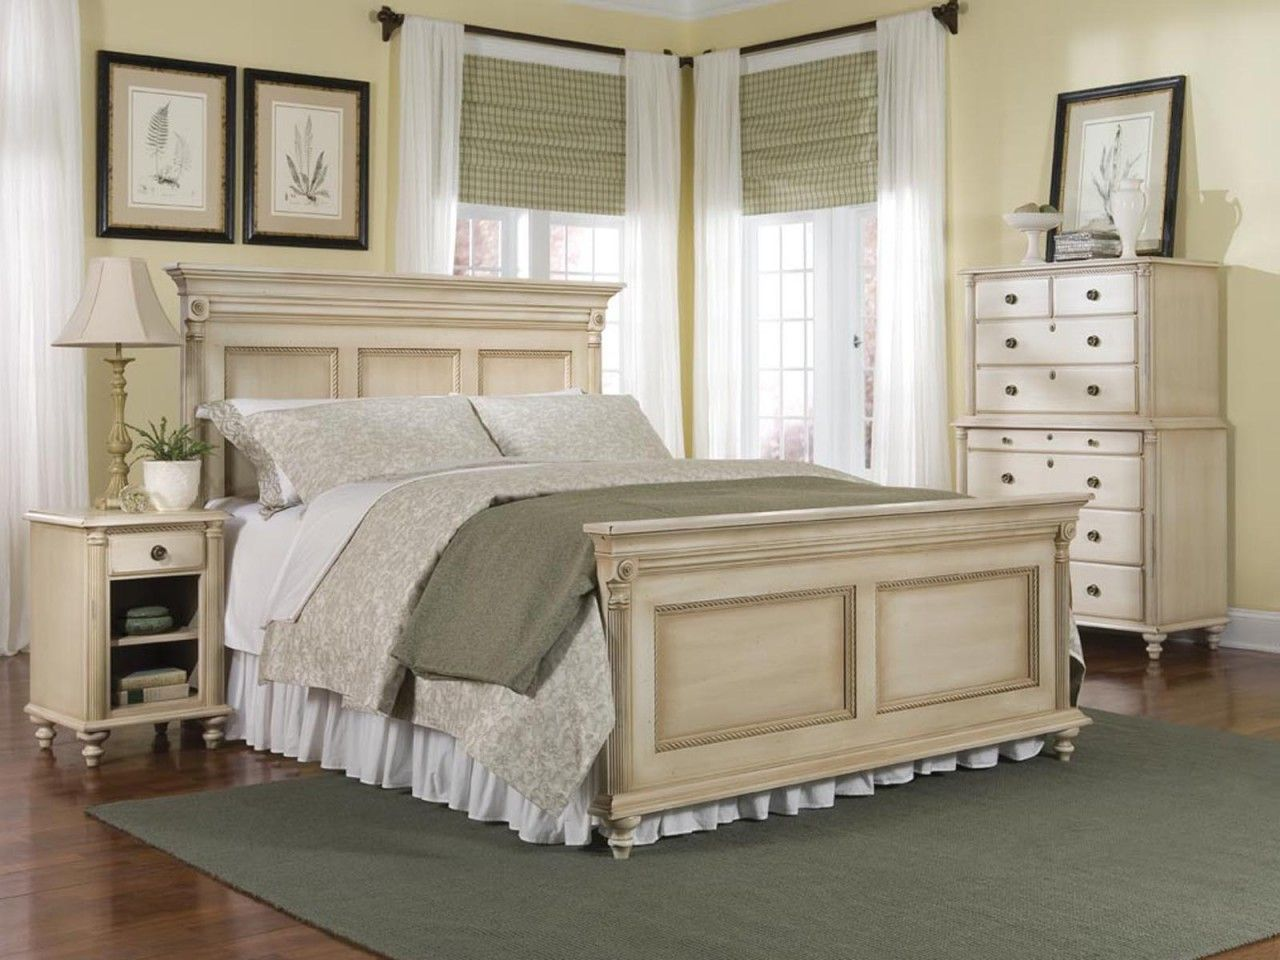 cream bedroom furniture setsdurham furniture savile row 4 piece rh pinterest com